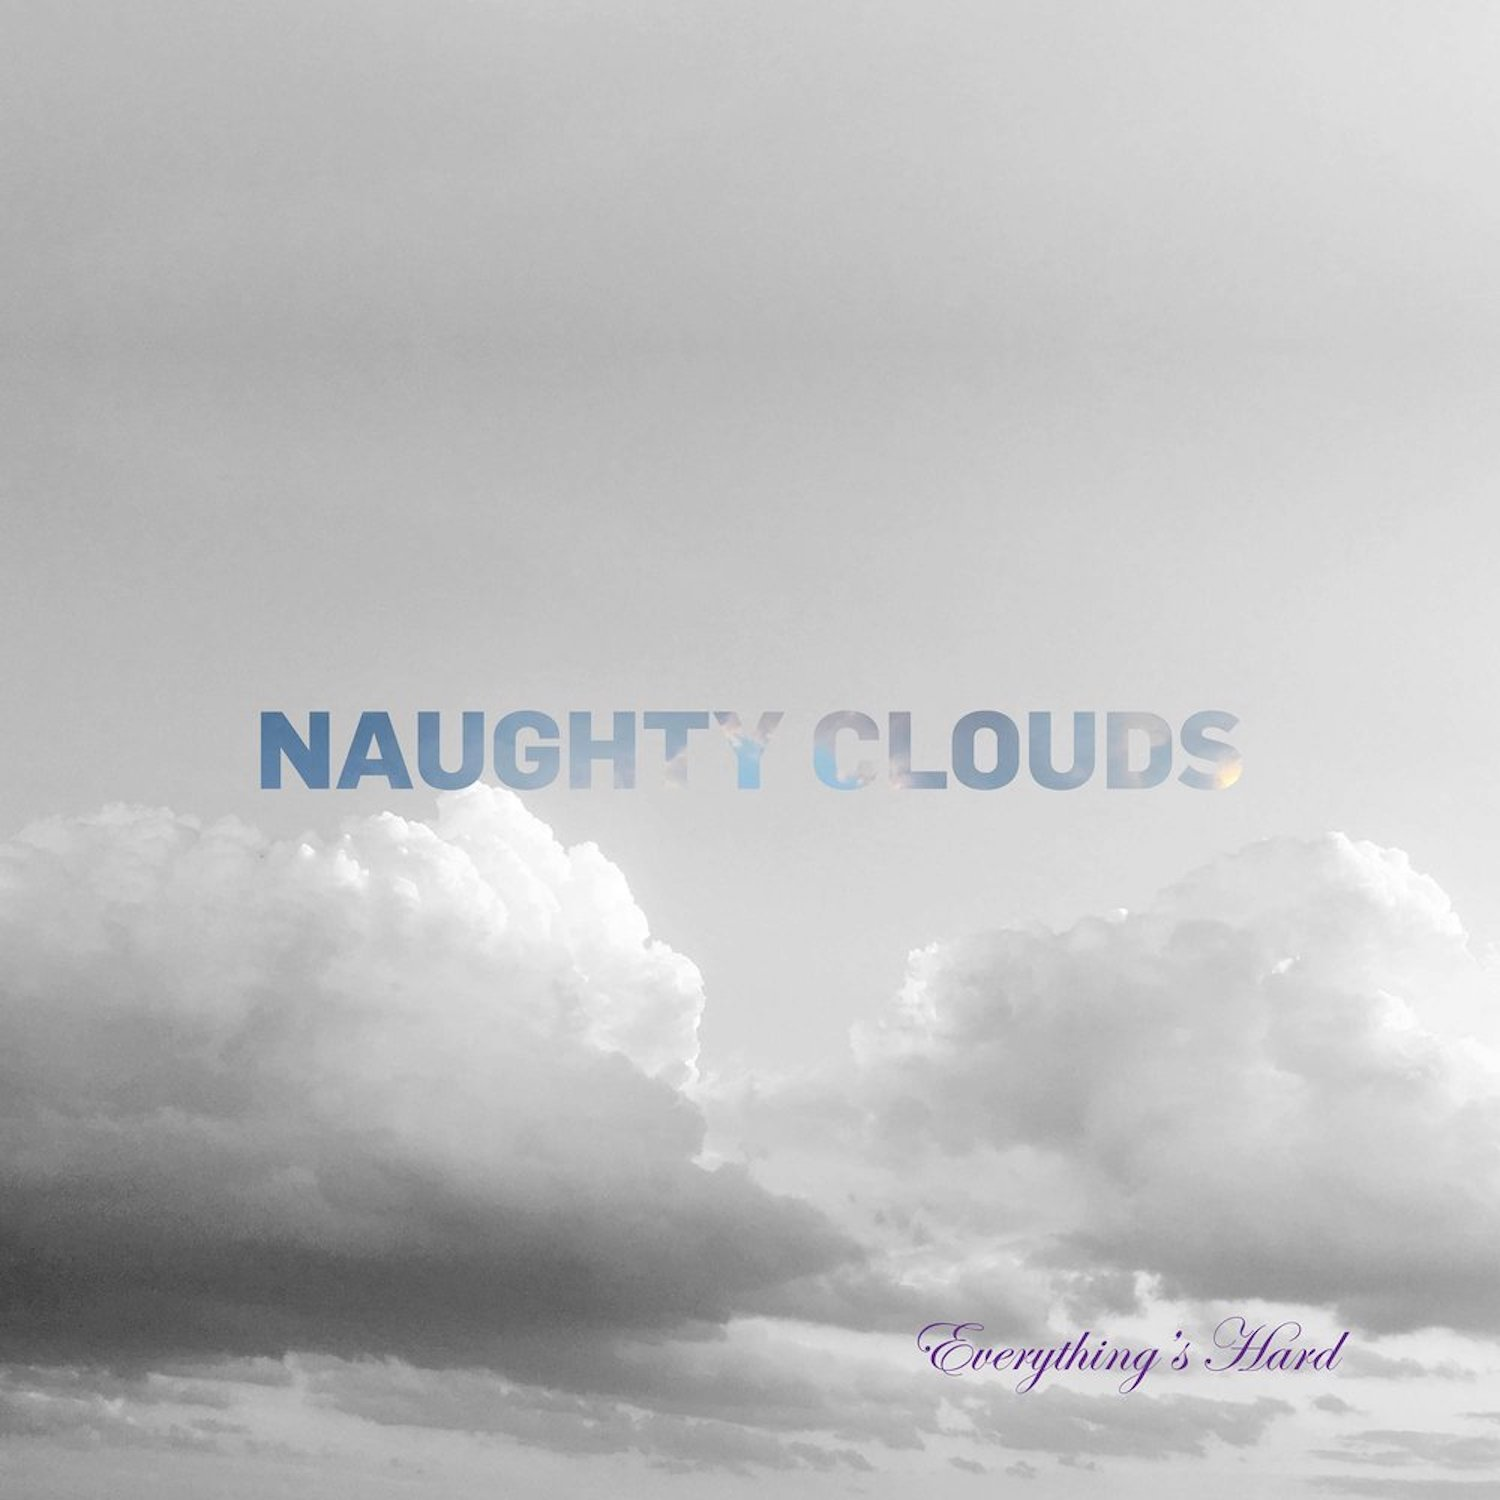 Naughty Clouds' debut  Everything's Hard  is Bob Makin's Record of the Week 5/17/18.